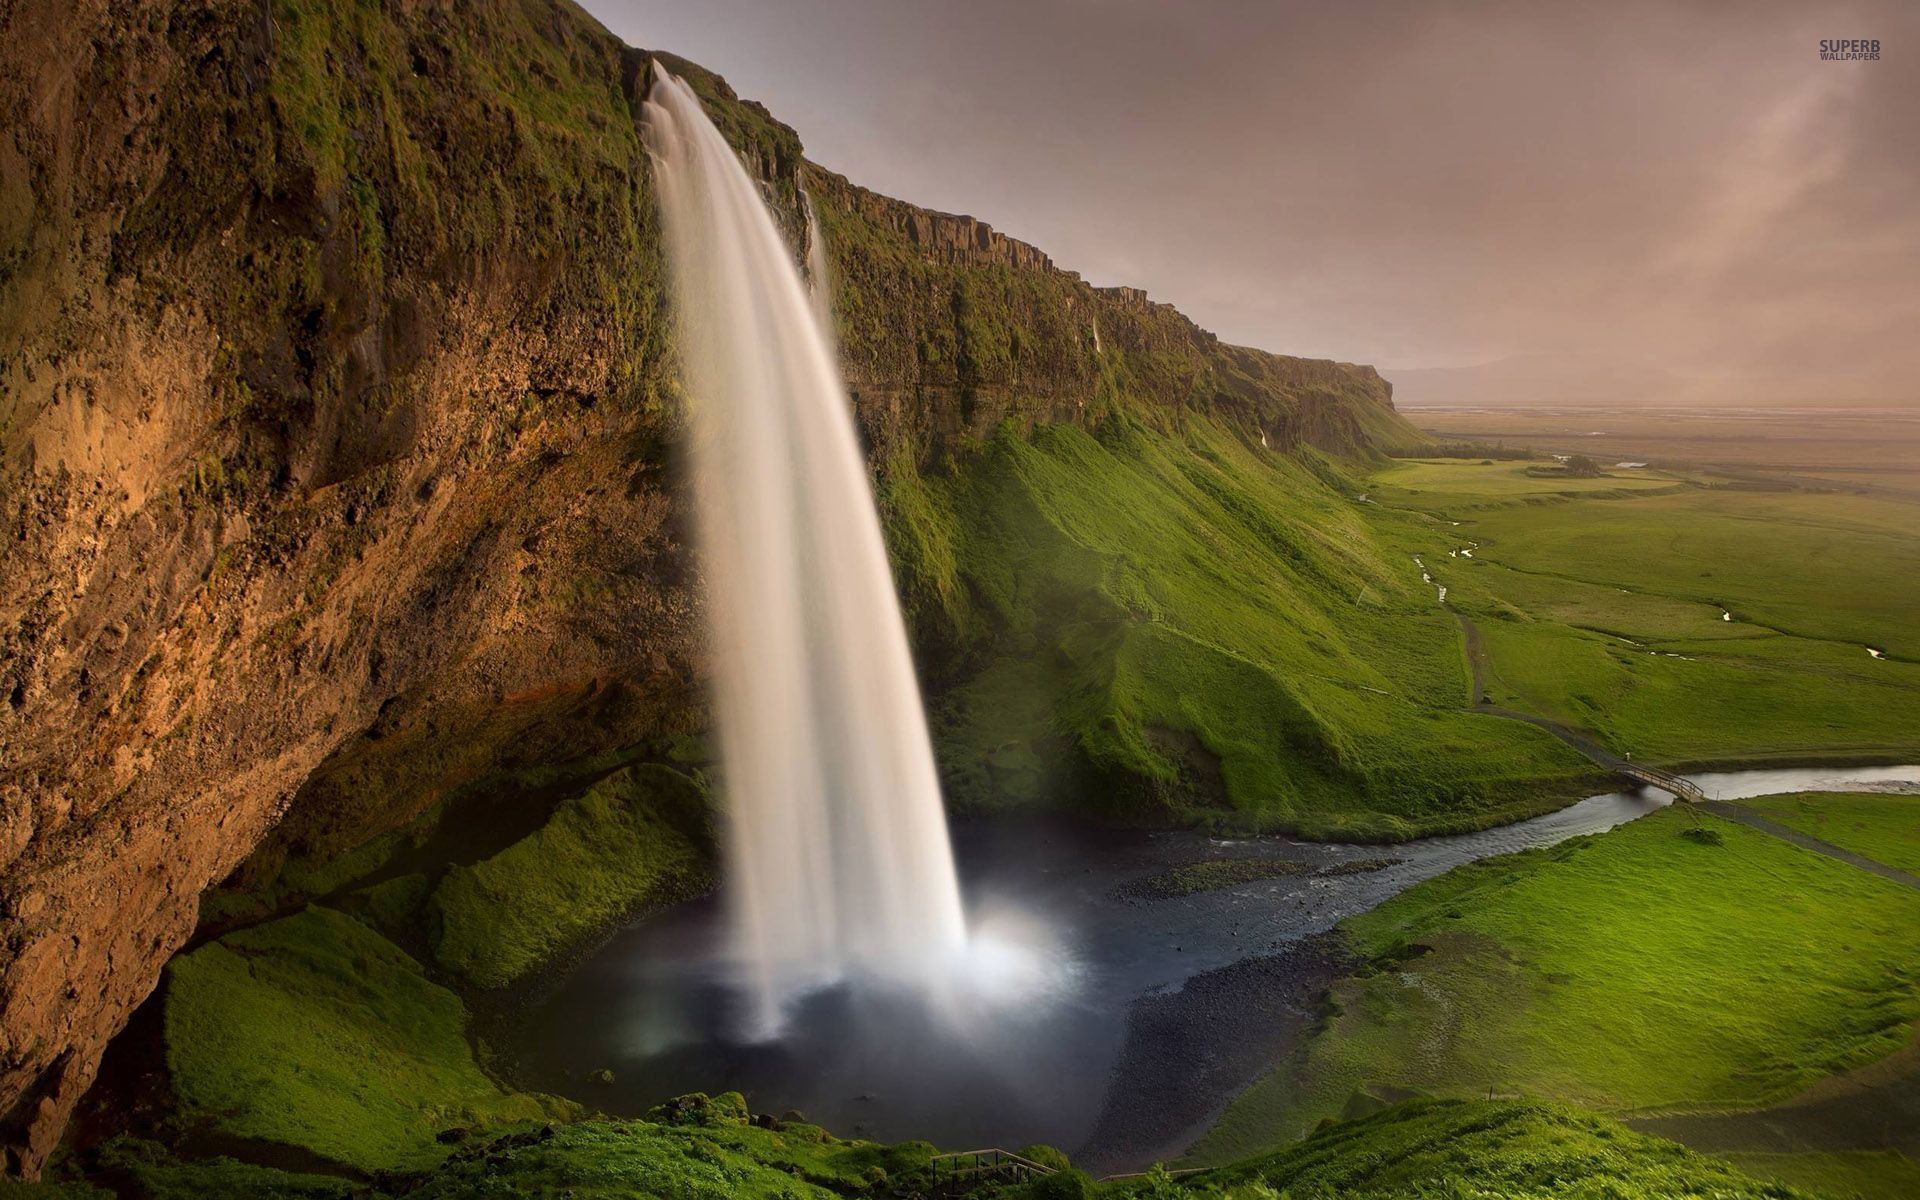 Pretty Fall Desktop Wallpaper Seljalandsfoss Waterfall Cliff Wallpapers Seljalandsfoss